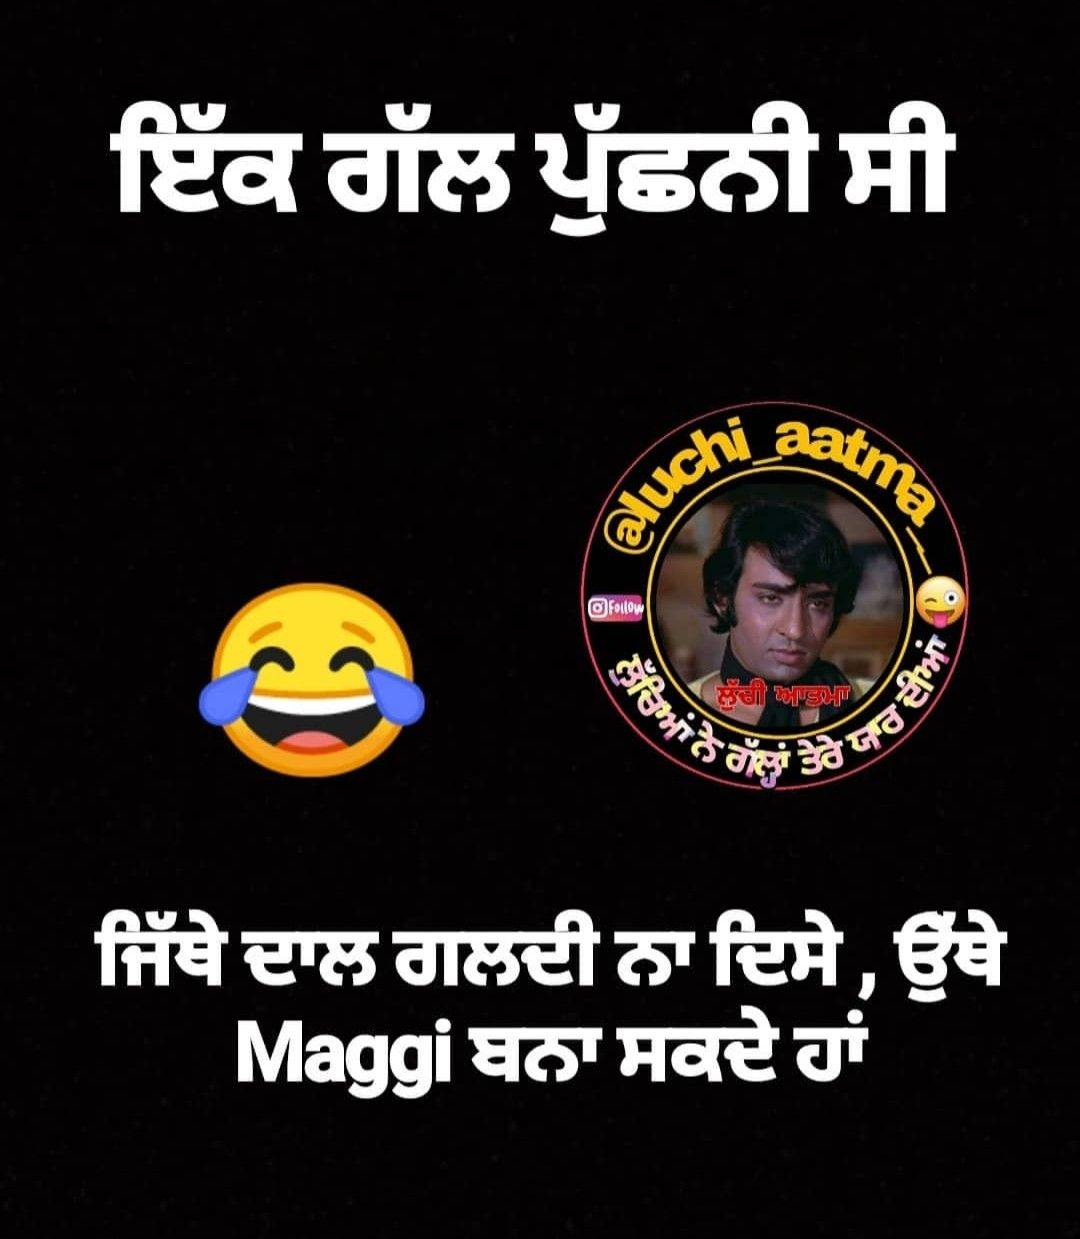 Pin by Pavneet on punjabiss Funny quotes, Punjabi funny